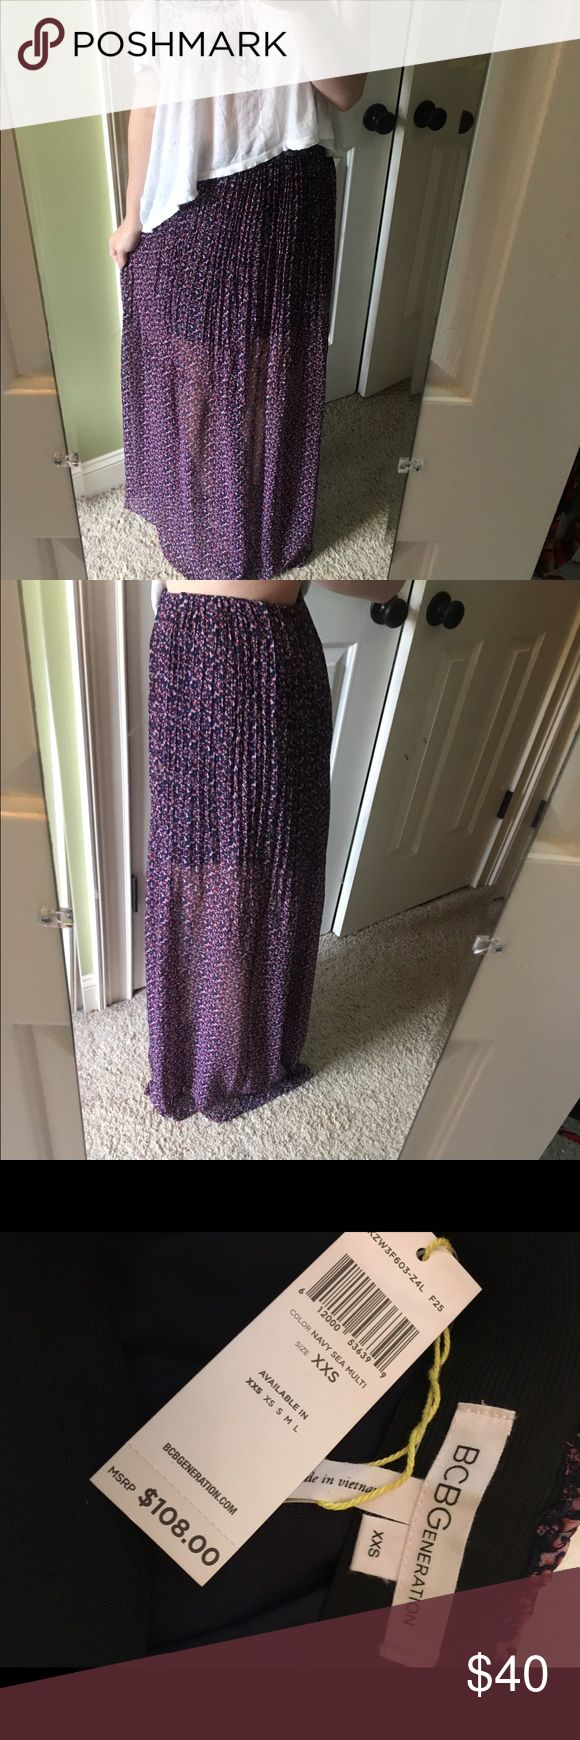 NWT BCBGeneration Maxi Gorgeous maxi skirt from BCBG generation. Tags still attached :-) in perfect condition. Comes with a slip and the floral outer layer is sheer. I am 5'3 and it hits right at the floor BCBGeneration Skirts Maxi